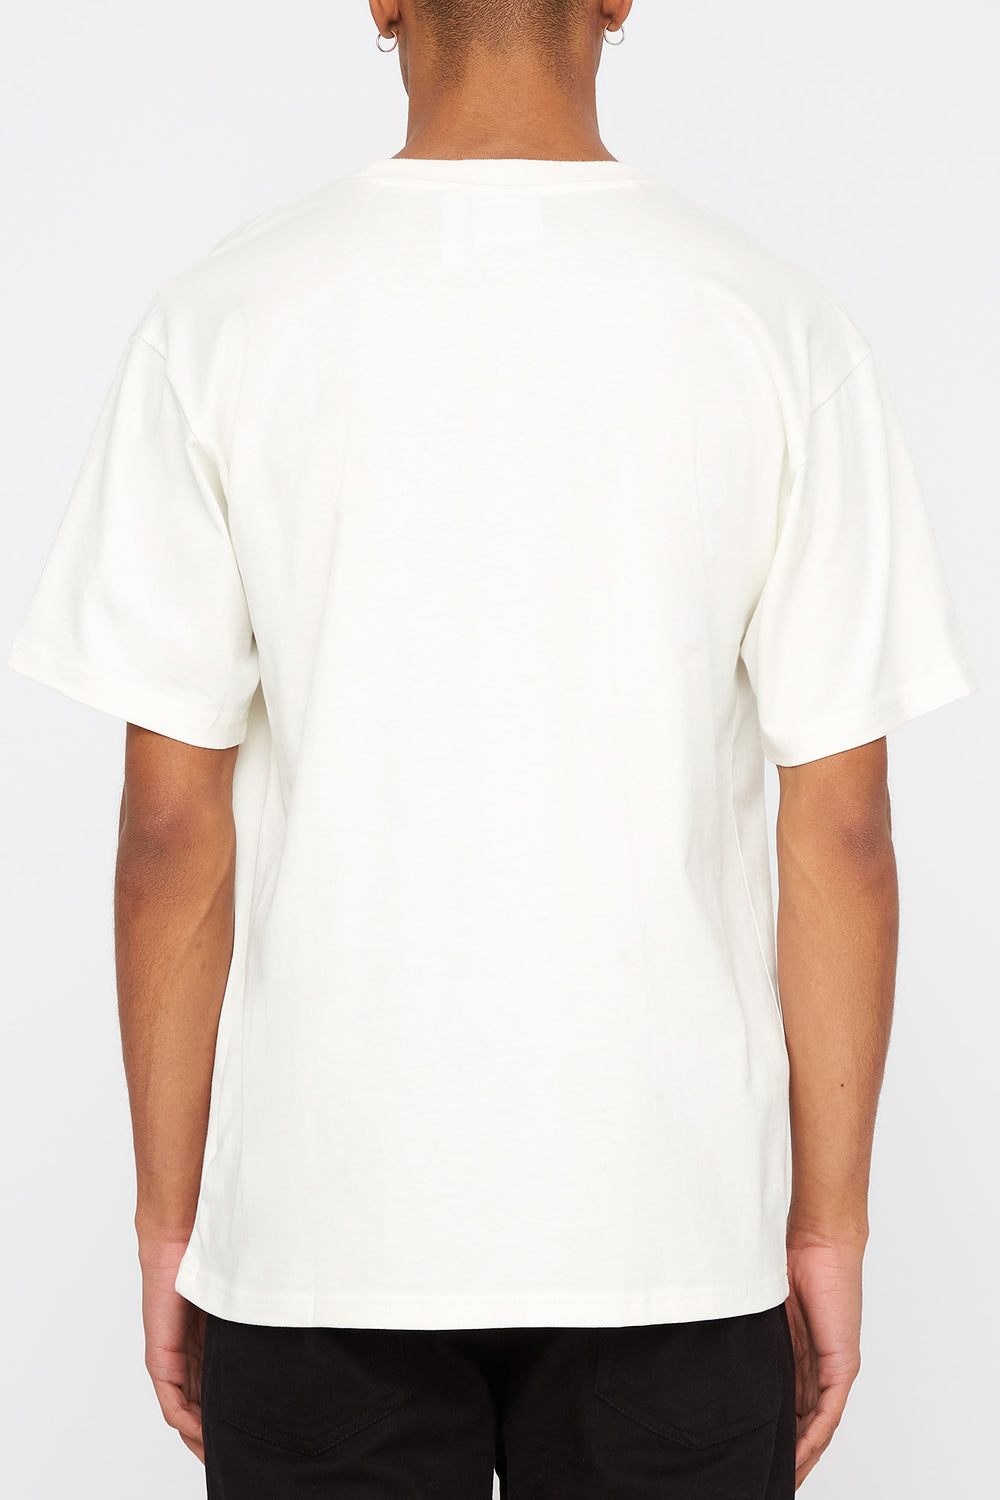 Adidas Mens Rules Are For Sports T-Shirt White